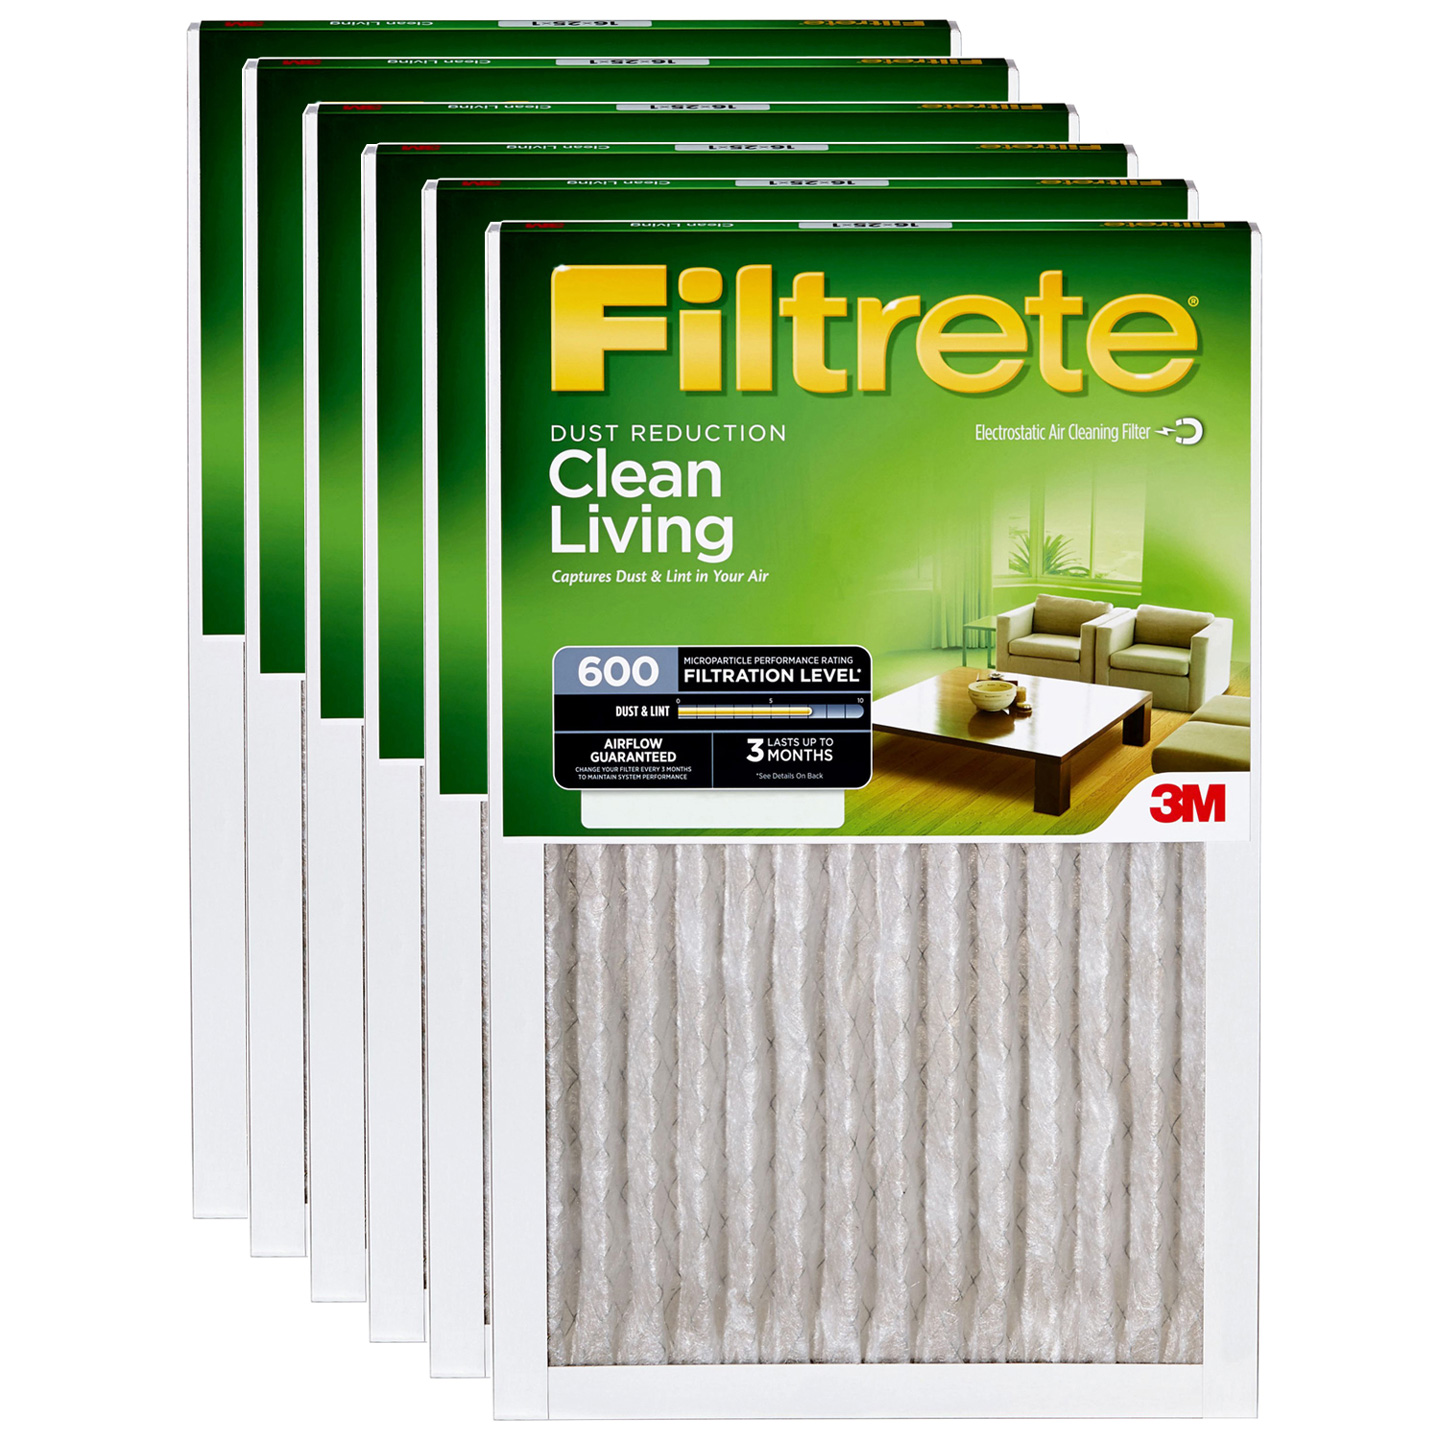 3M Filtrete 9833DC-6 Dust and Pollen Reduction Filters (6 Pack) FILTRETE_DUST_20x25x1_6_PACK